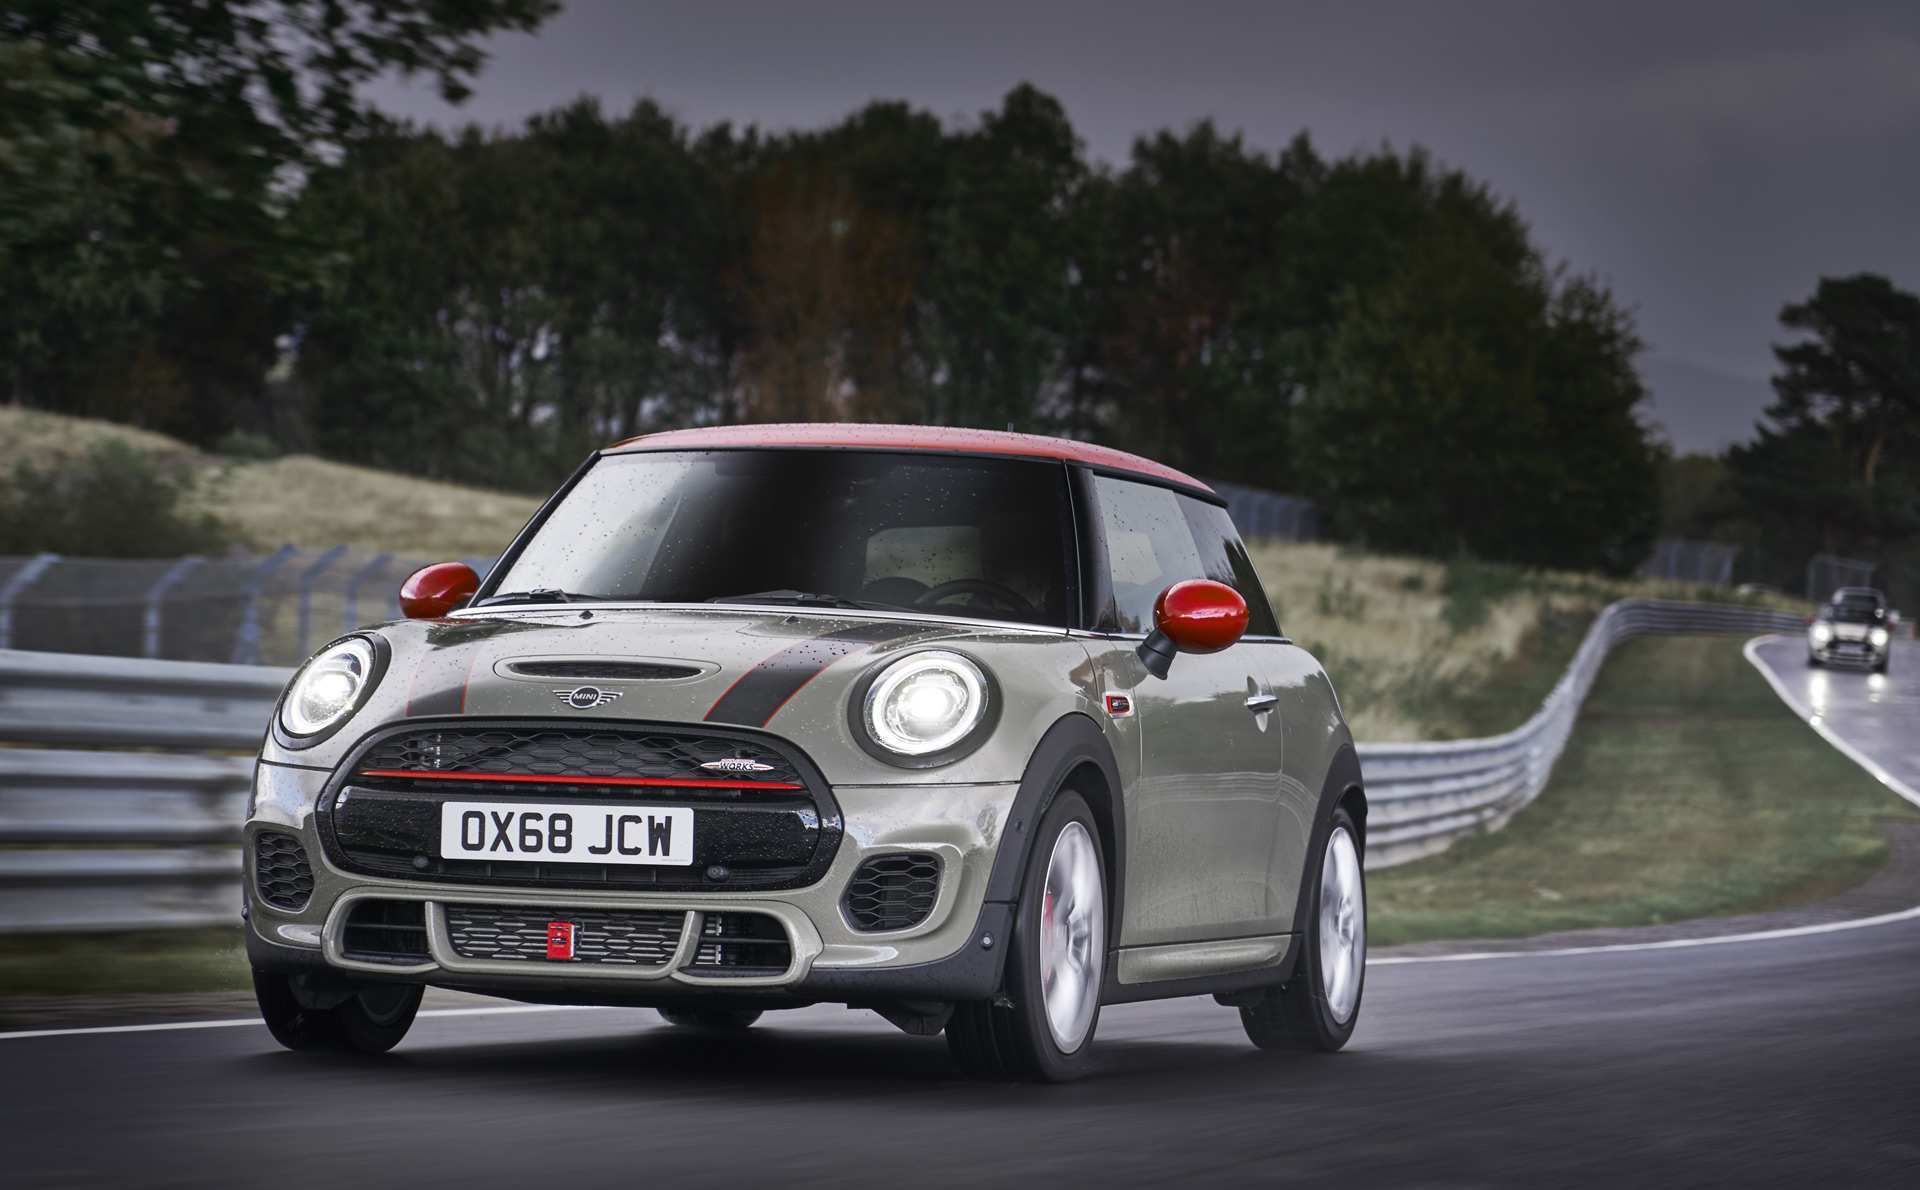 47 All New 2019 Mini Cooper Jcw New Review for 2019 Mini Cooper Jcw